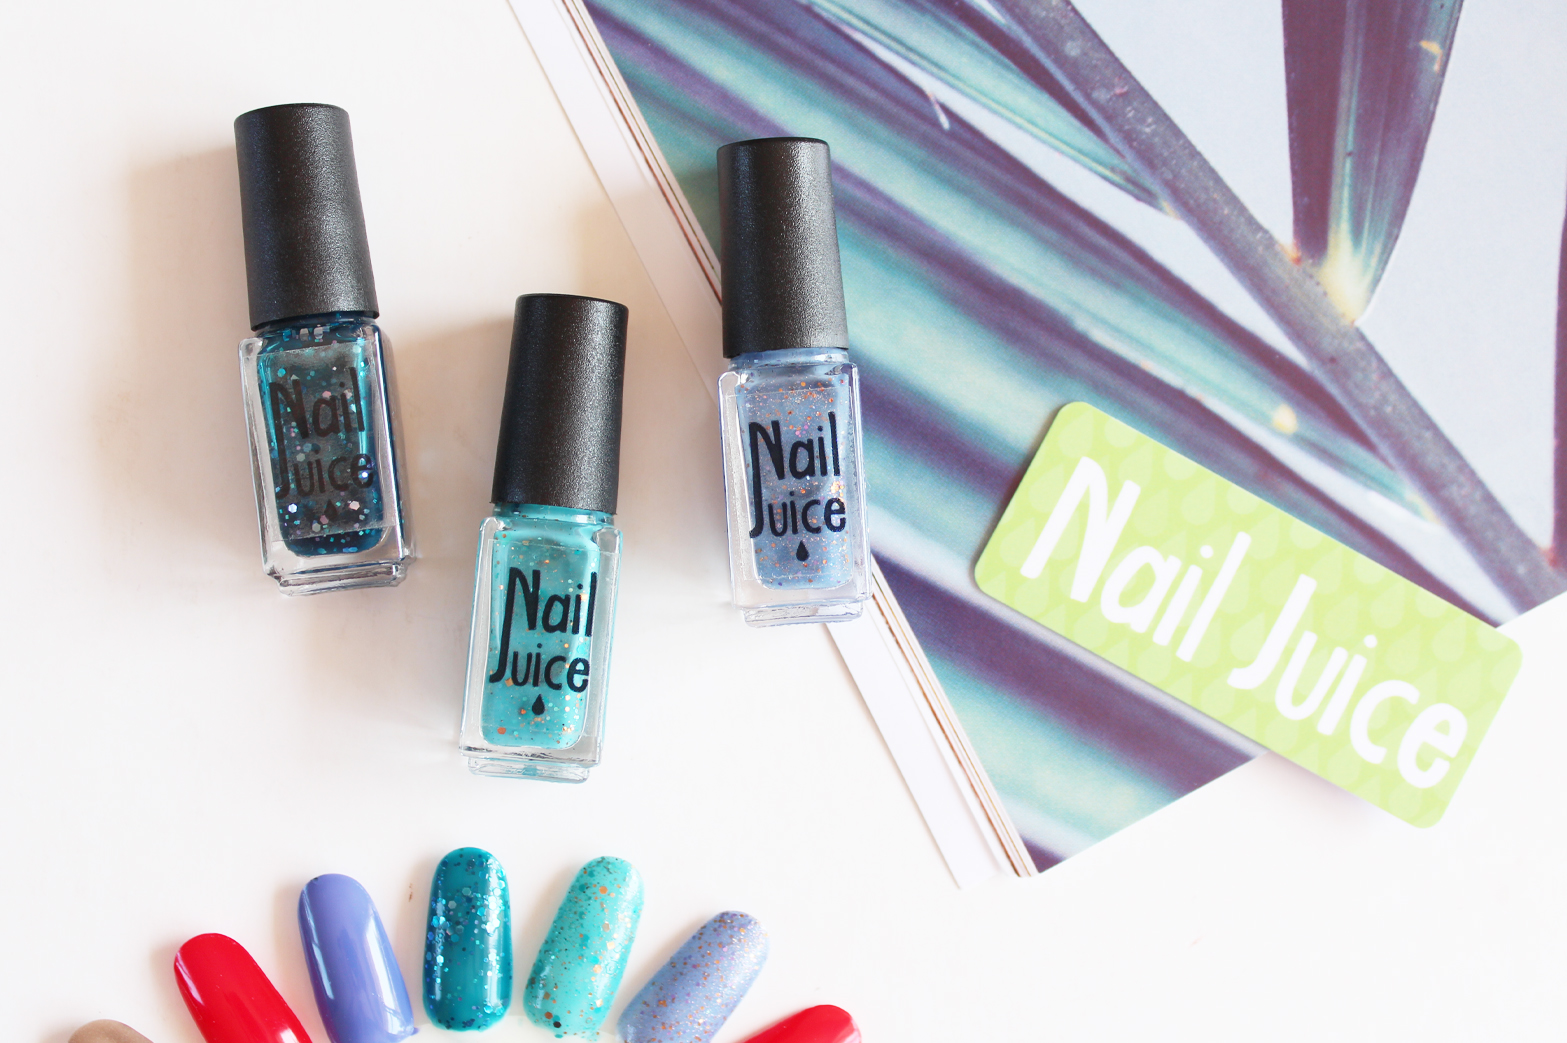 NAIL JUICE | Indie Nail Polishes - Review + Swatches - CassandraMyee